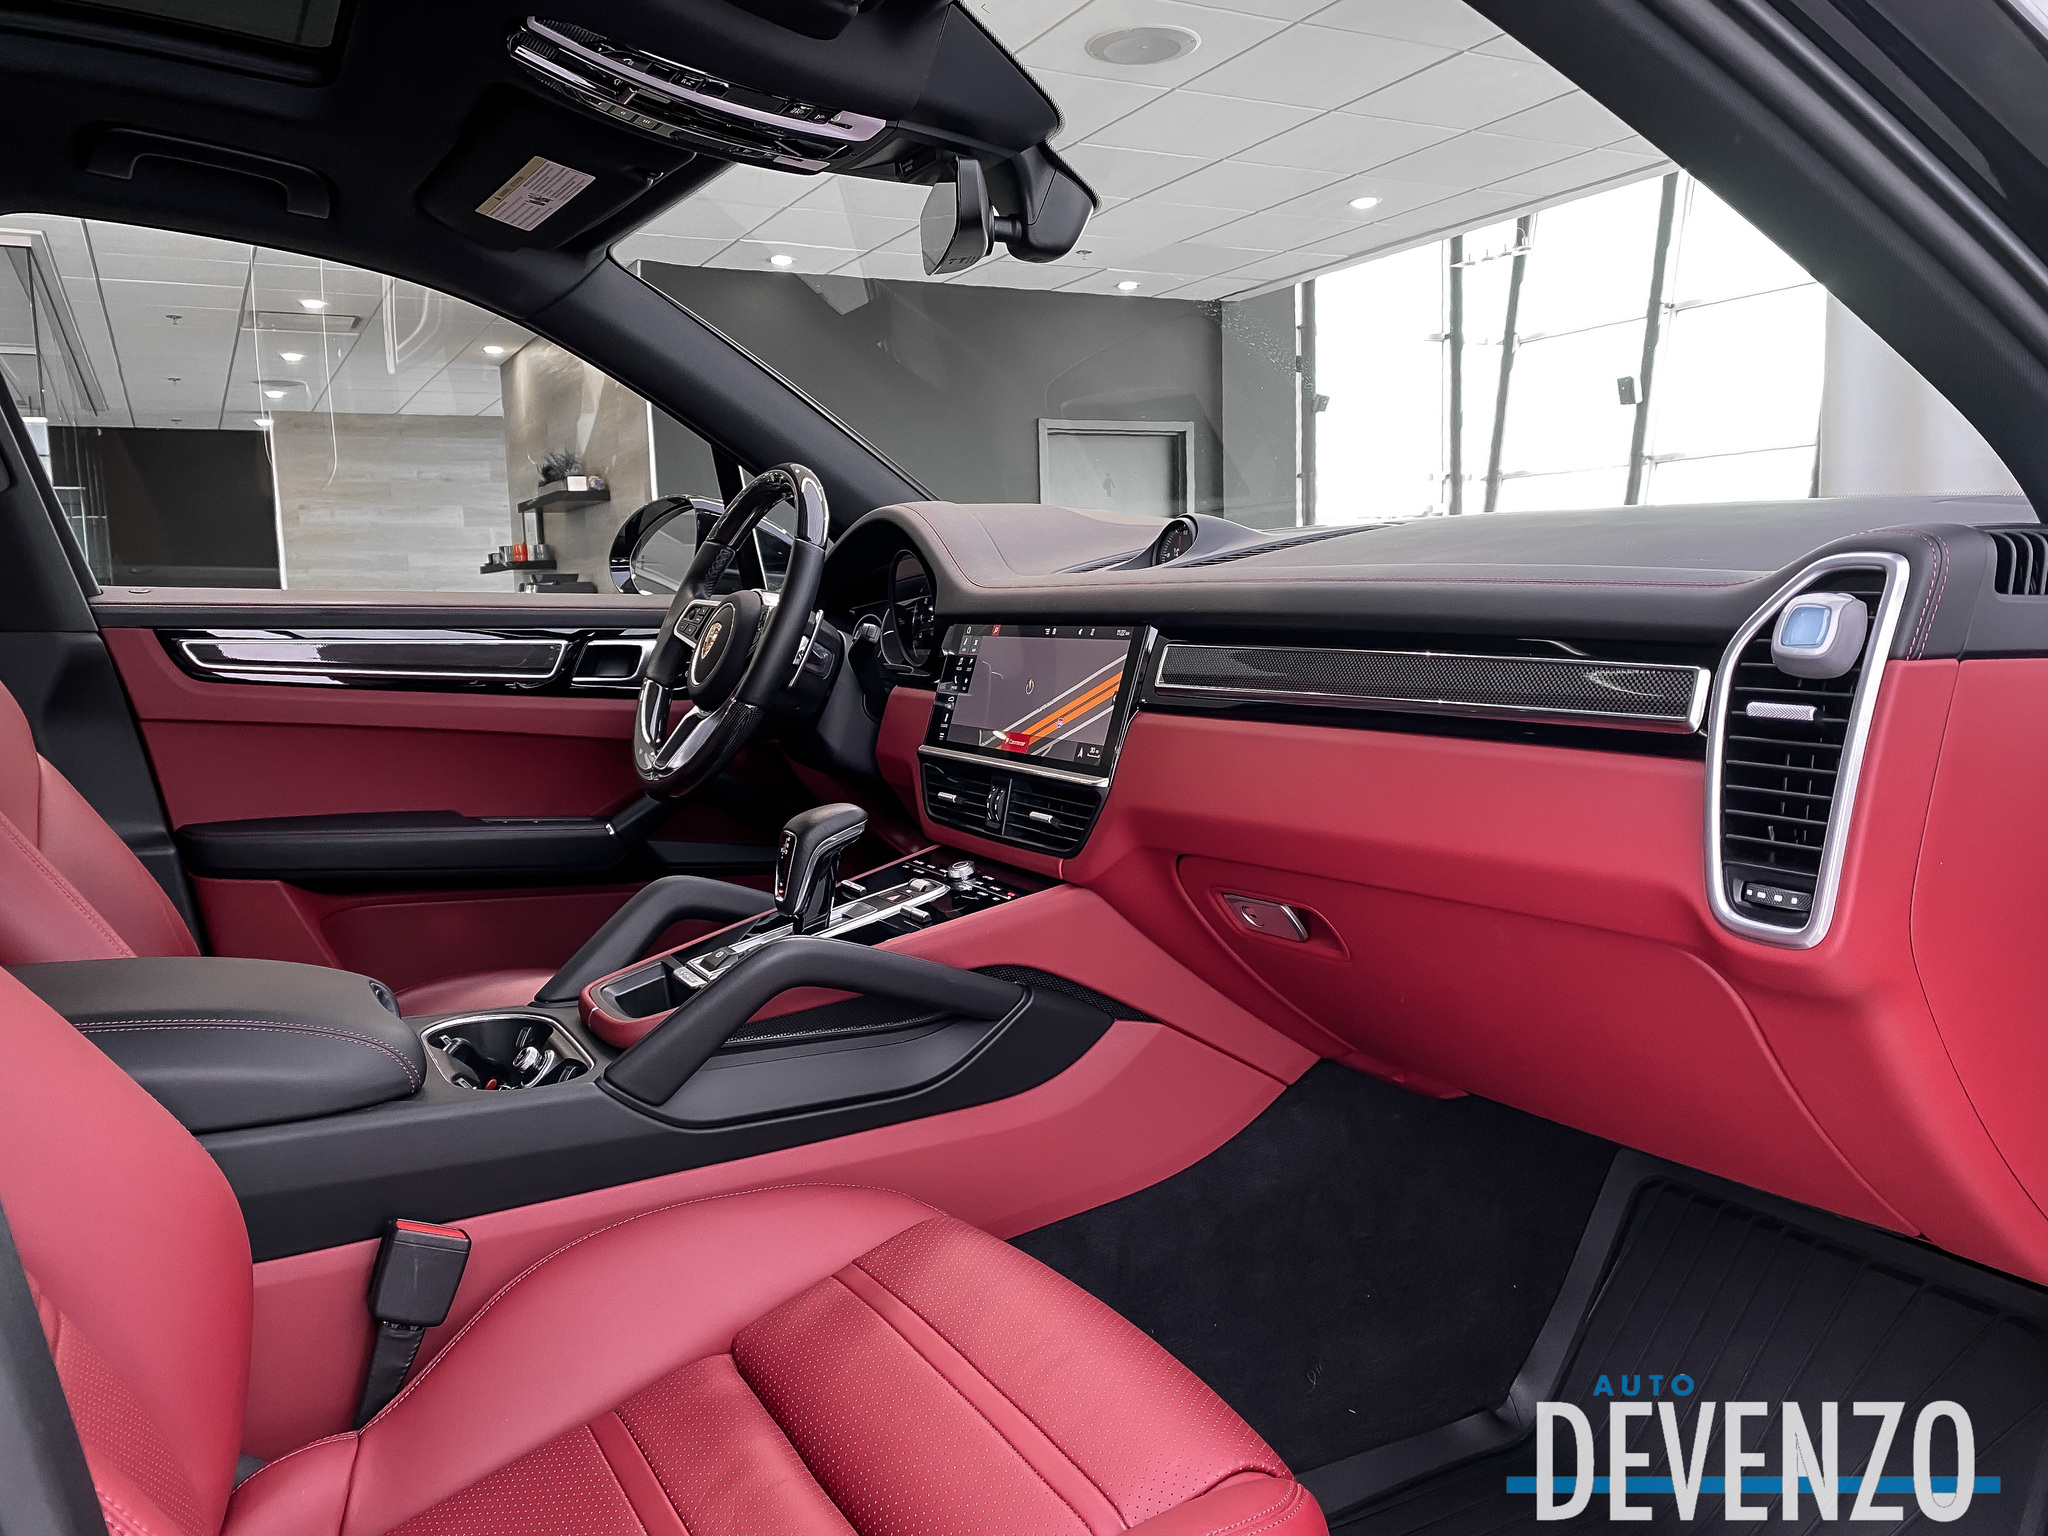 2019 Porsche Cayenne S AWD 434HP 2.9L Red Leather / Carbon Fiber Int complet